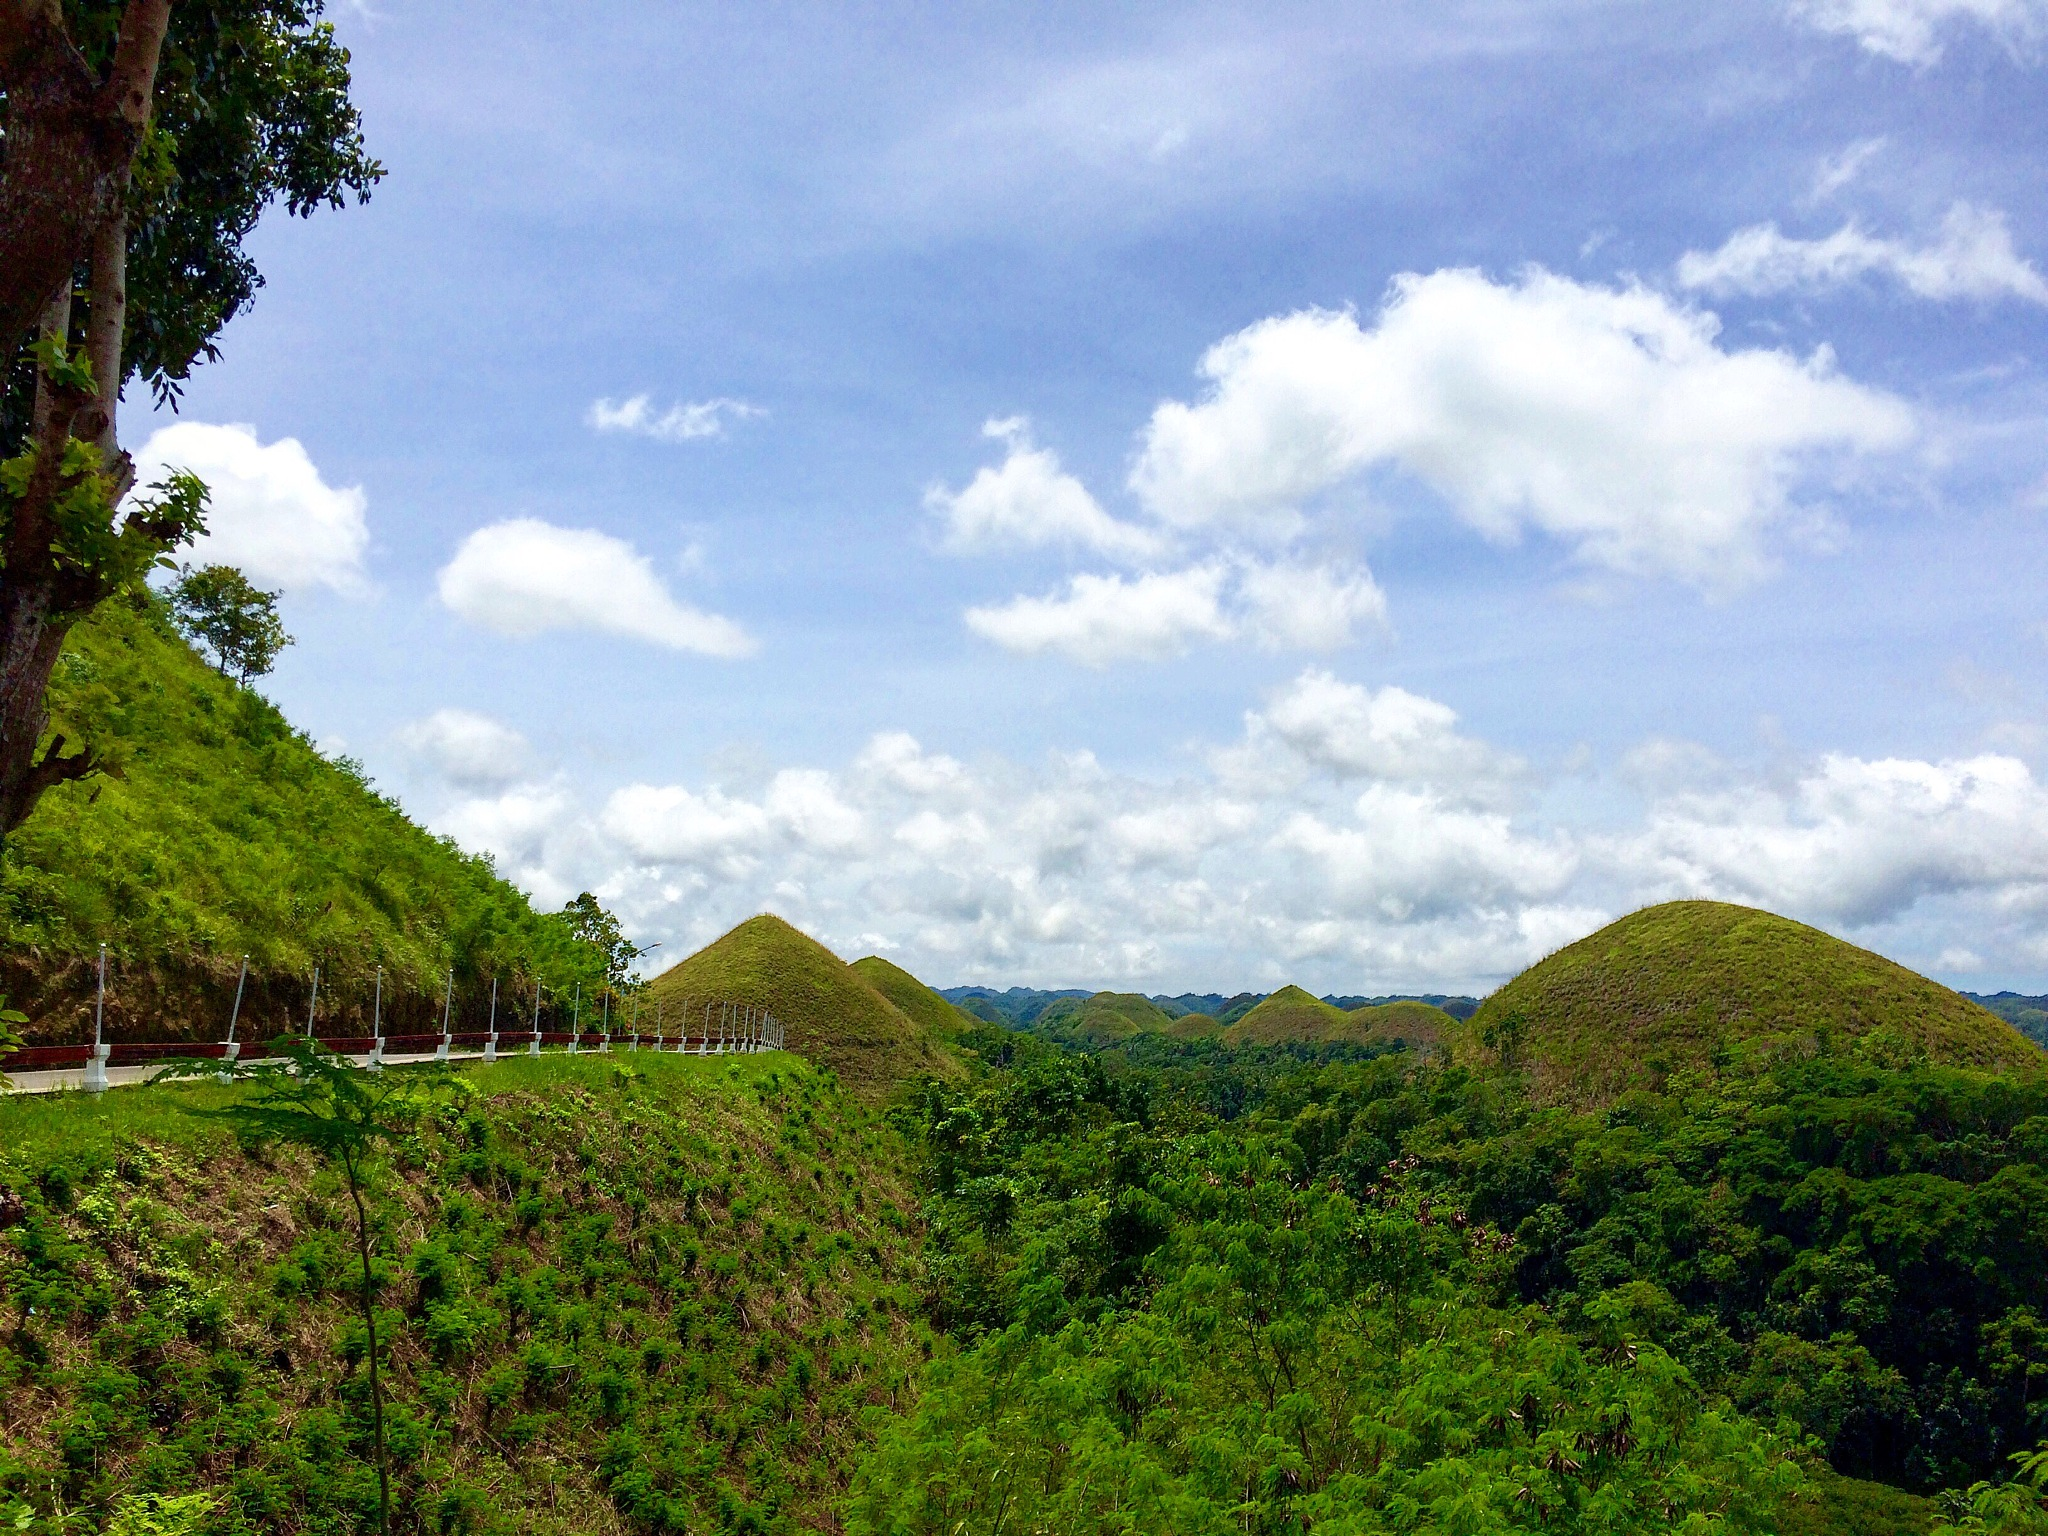 Chocolate Hills by Nikki Lagutin